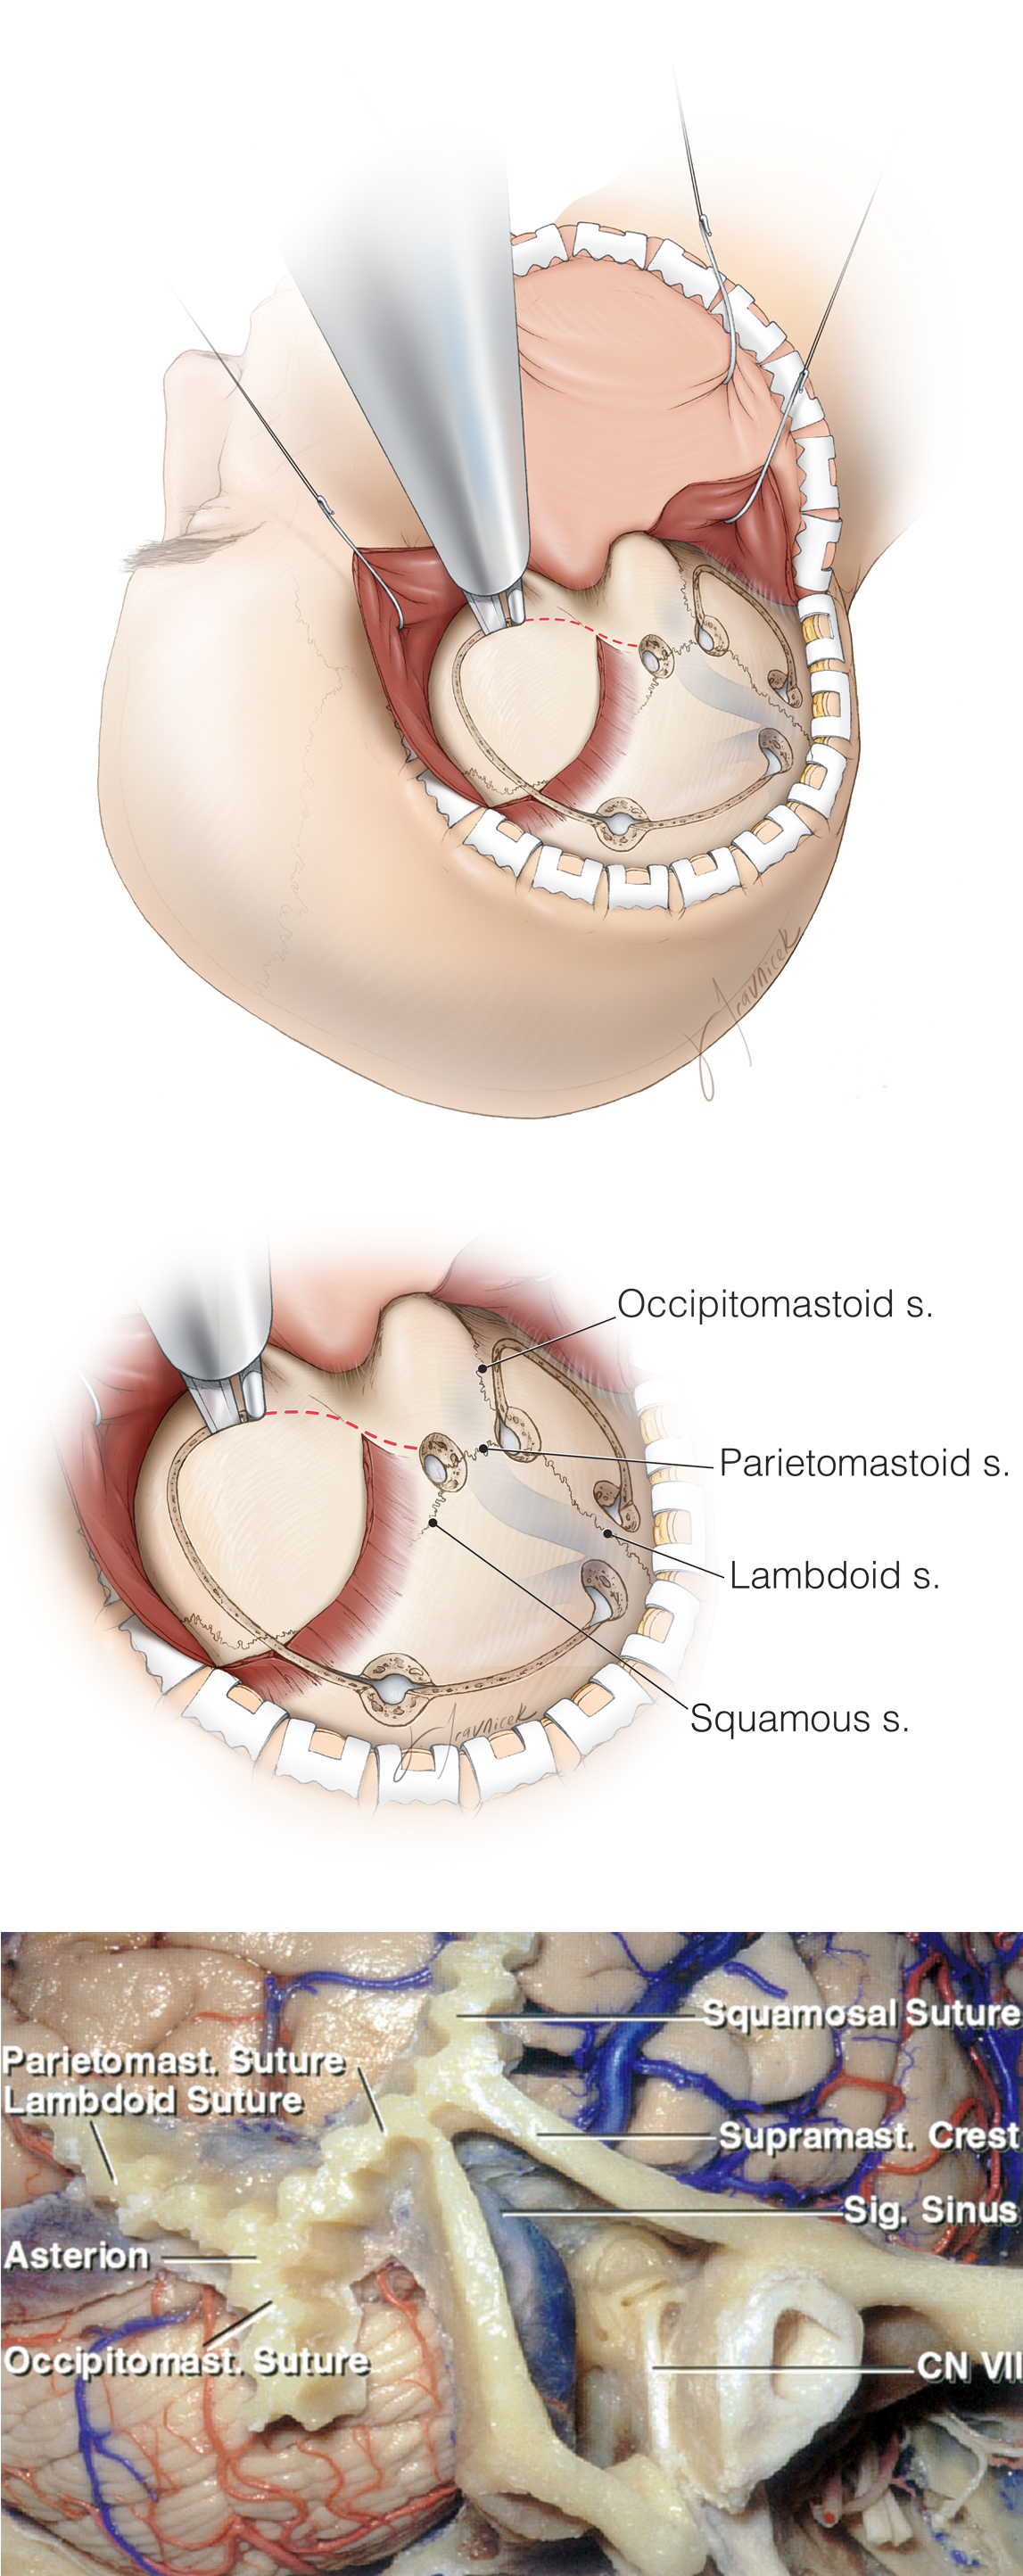 Figure 7: The craniotomy for posterior petrosal approach includes both a temporal and a suboccipital component. I make four burr holes, two sets on each side of the transverse sinus. The first burr hole is placed immediately medial and inferior to the asterion. This burr hole gives access to the infratentorial compartment.    The second burr hole is made at the junction of the squamous and parietomastoid sutures (upper and middle images). This burr hole provides access to the supratentorial compartment. The space between these two burr holes contains the transverse-sigmoid junction. A second set of burr holes is placed more medially above and below the superior nuchal line, flanking the transverse sinus.    A high-speed drill with a foot attachment is used to elevate subtemporal and suboccipital-retromastoid craniotomies. I avoid the use of the footplate attachment over the dural sinuses since these sinuses are often embedded in the inner surface of the skull bone and tenaciously adherent. The anatomy of the sutures in the region is further depicted in the lower image (images courtesy of AL Rhoton, Jr).